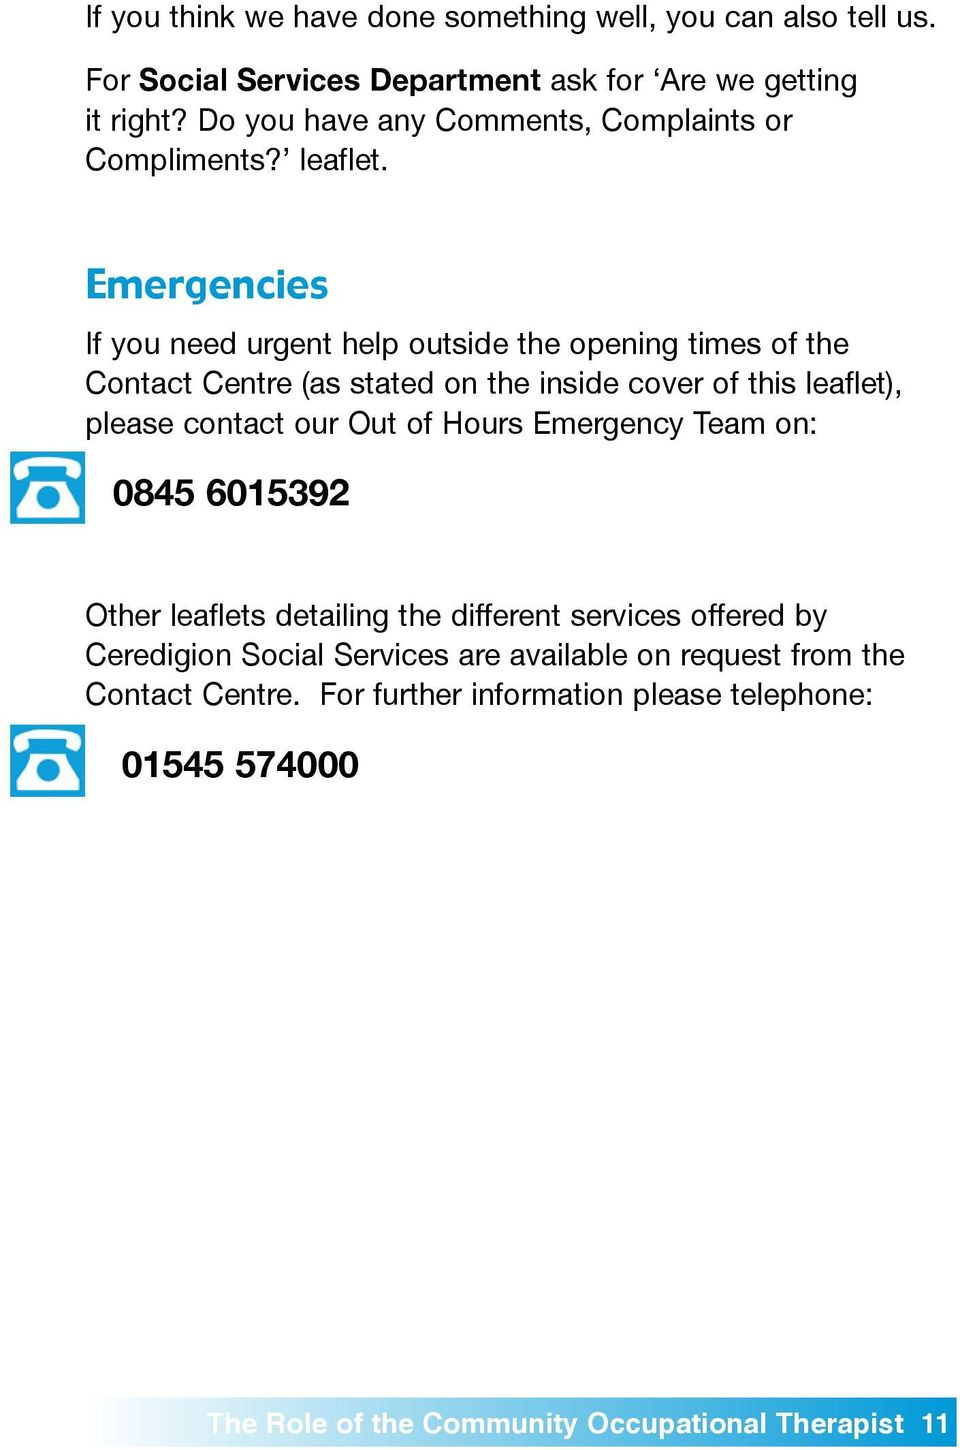 Emergencies If yo need rgent help otside the opening times of the Contact Centre (as stated on the inside cover of this leaflet), please contact or Ot of